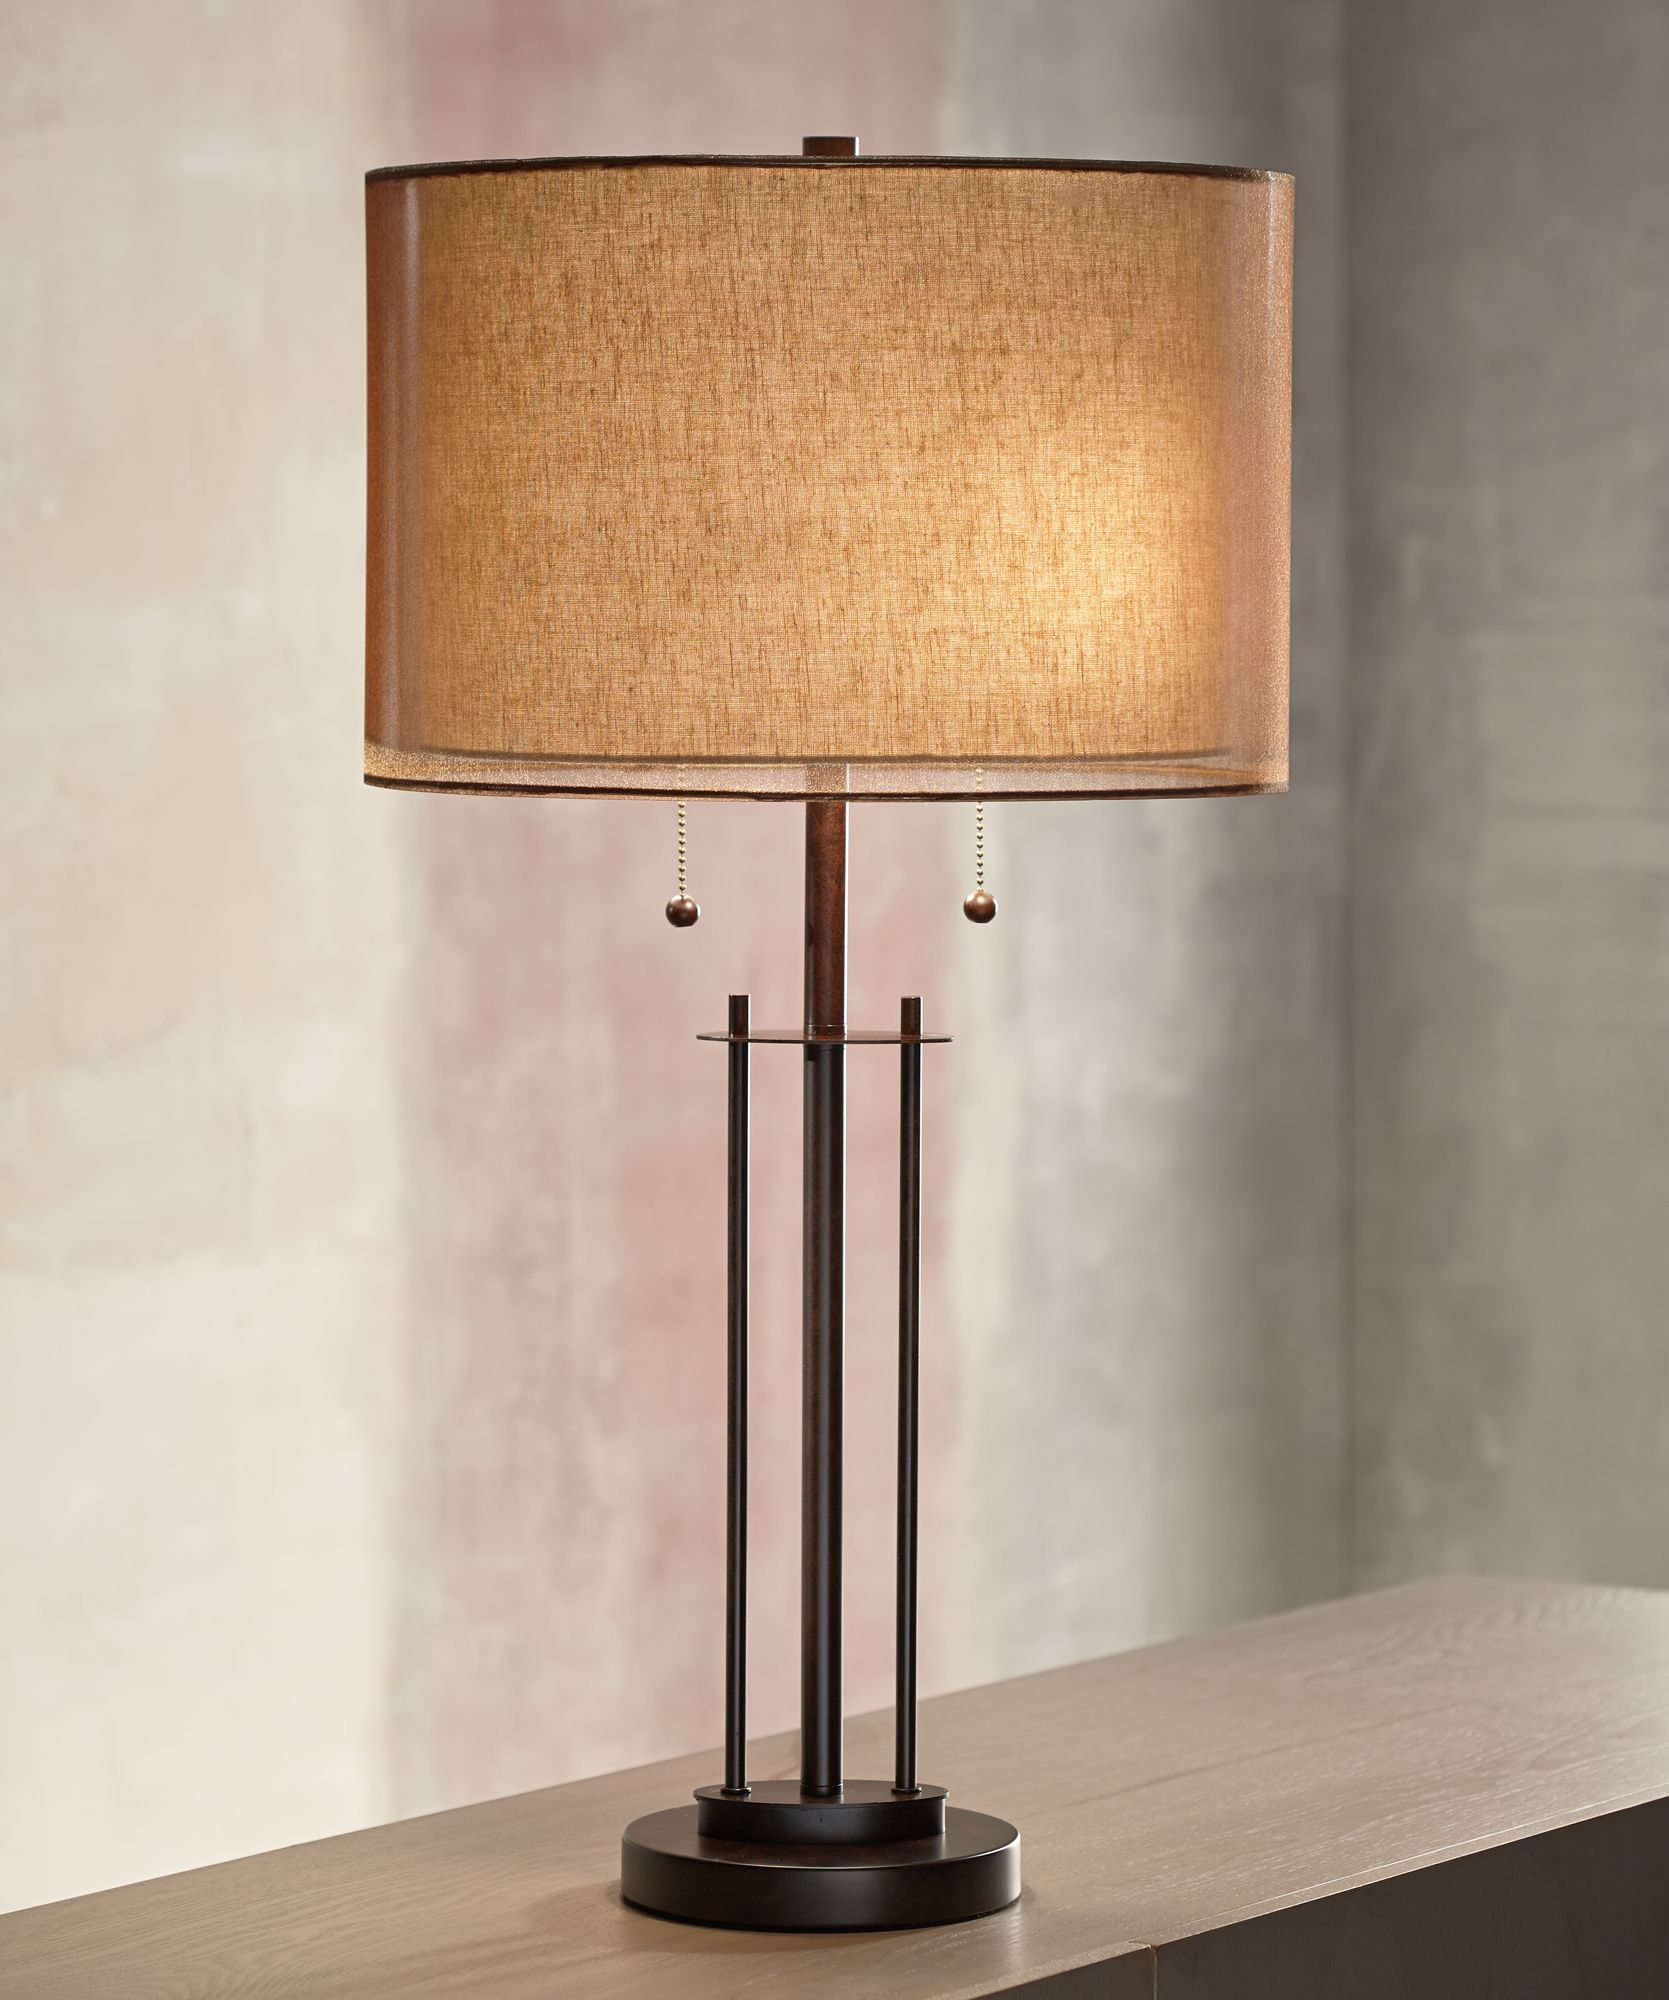 Delightful Franklin Iron Works Double Shade Bronze Table Lamp